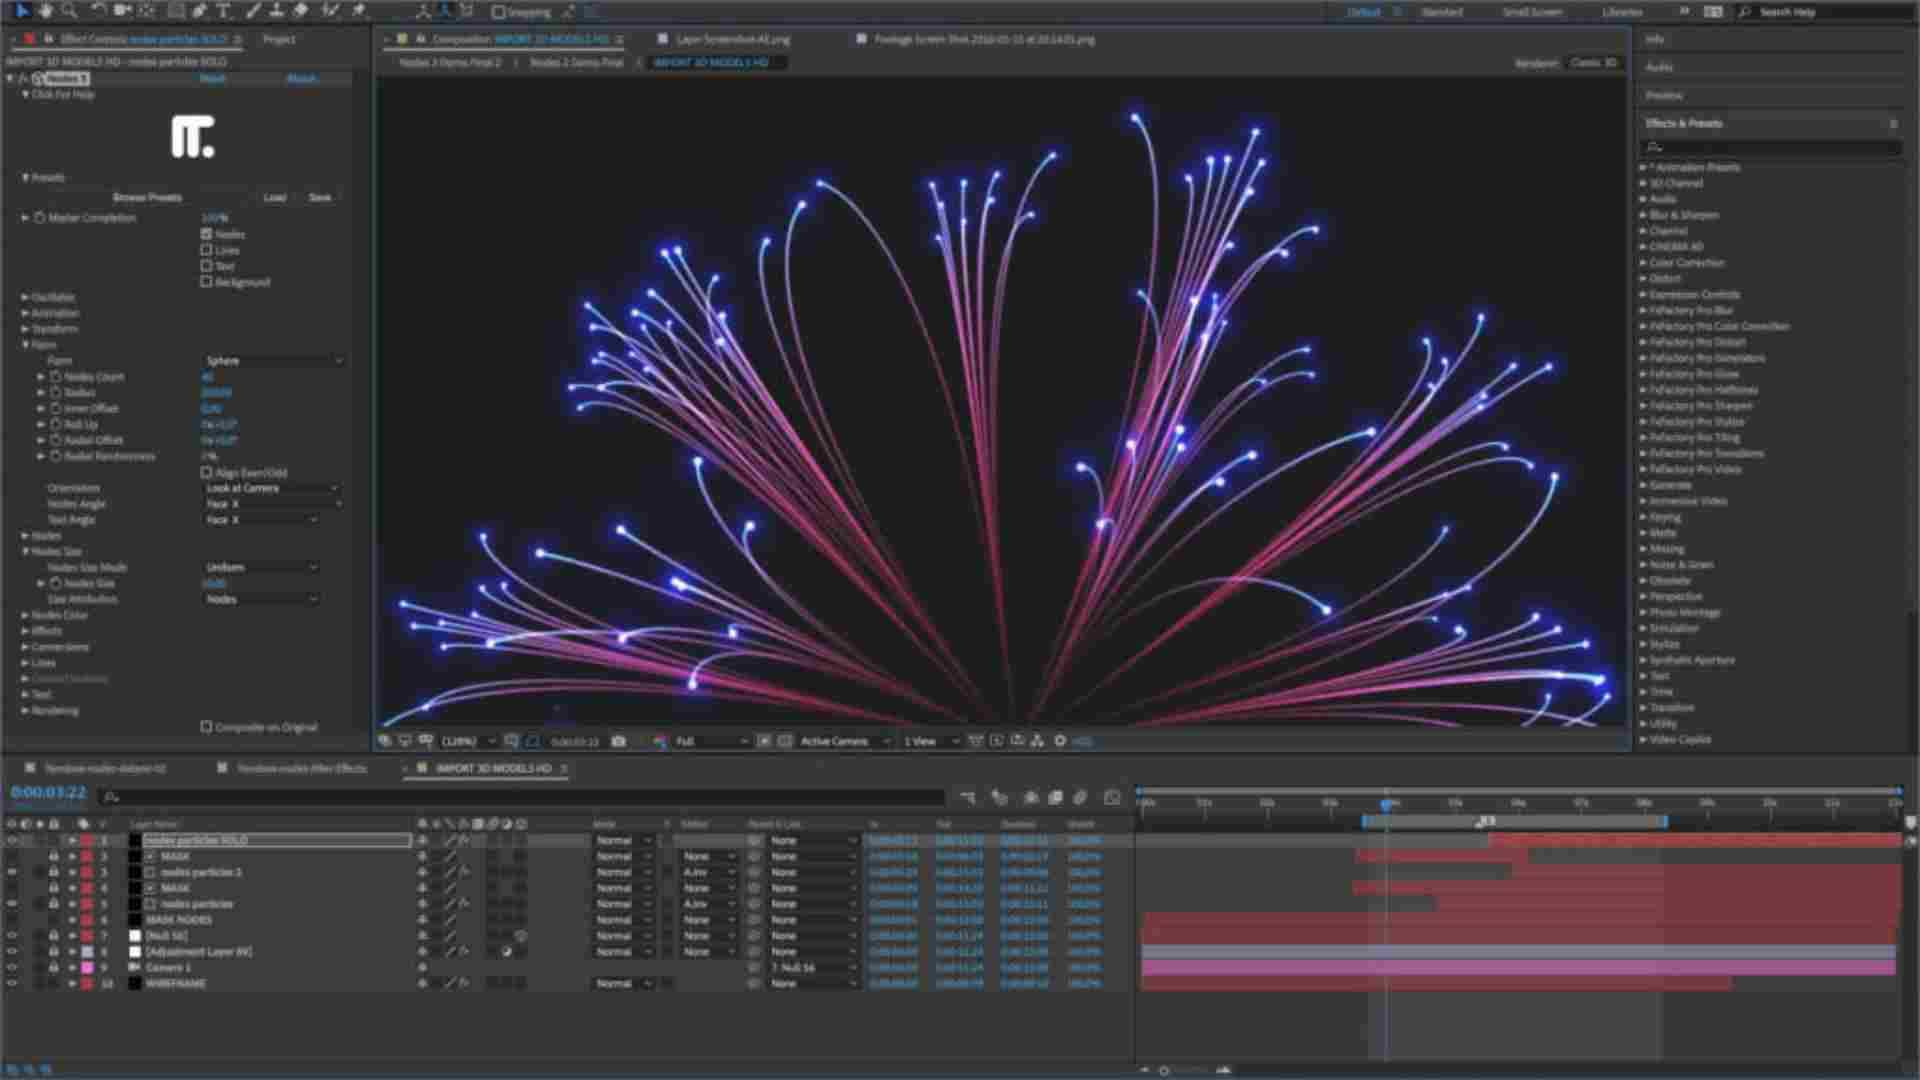 Spectacular Animations created in Adobe After Effects